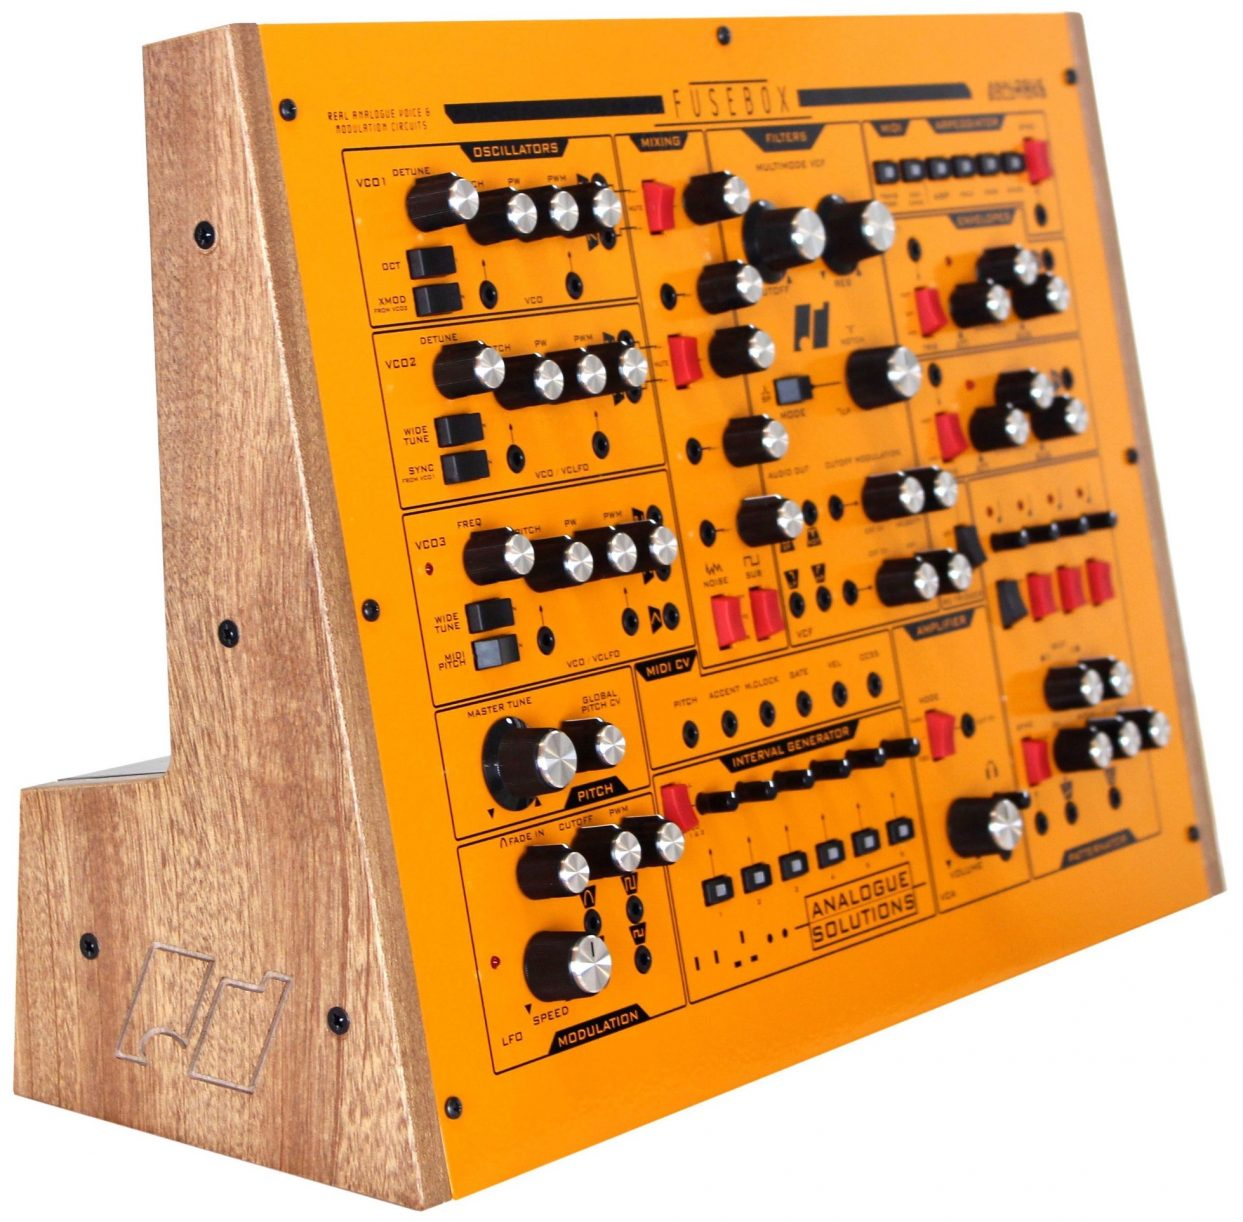 Analogue Solutions accepts preorders for Fusebox analogue monosynth